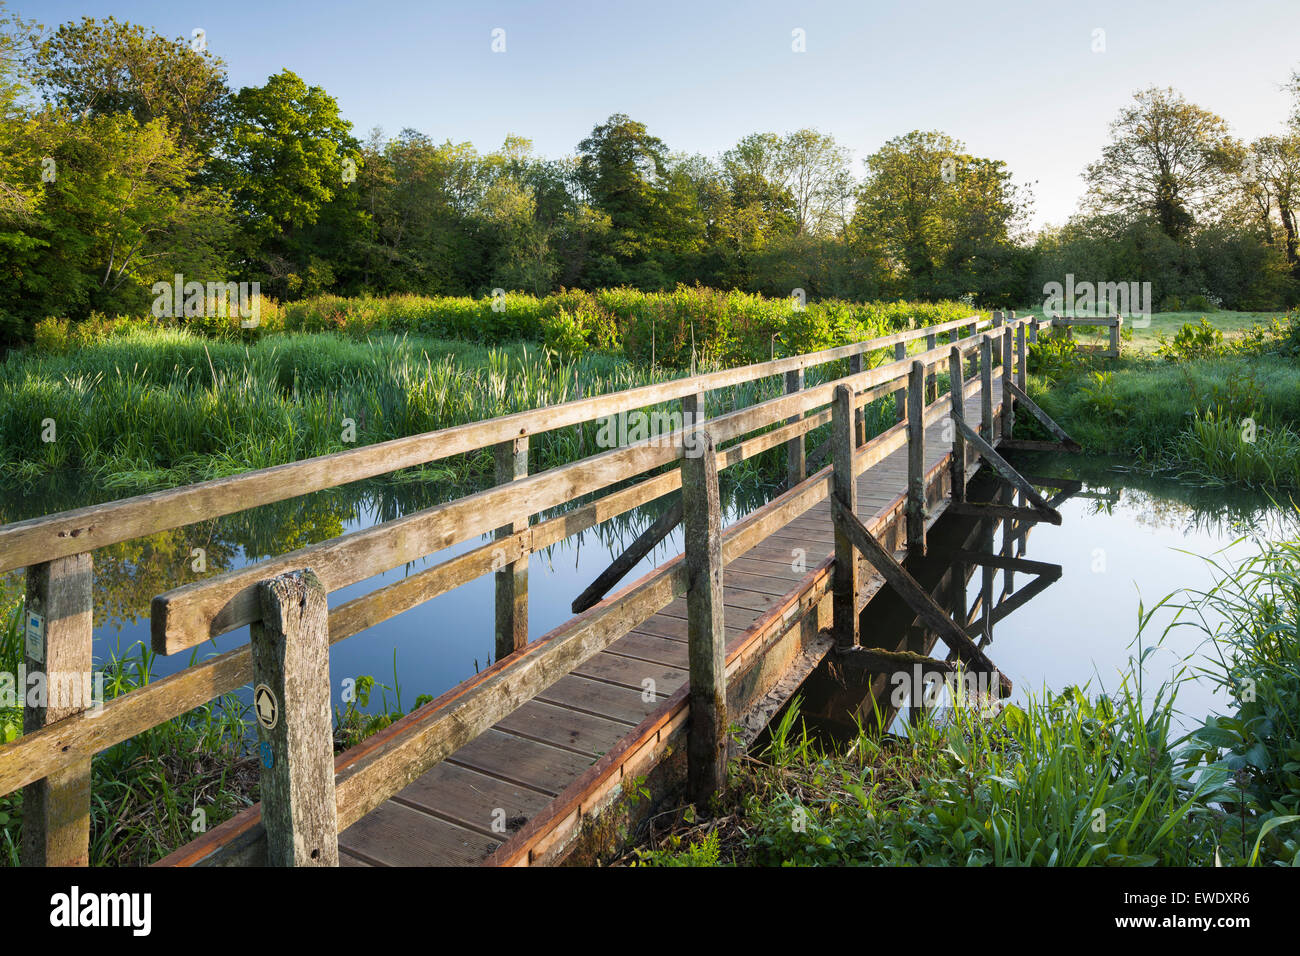 A bridge over the River Ouse at Barcombe Mills near Lewes, East Sussex, England, UK - Stock Image